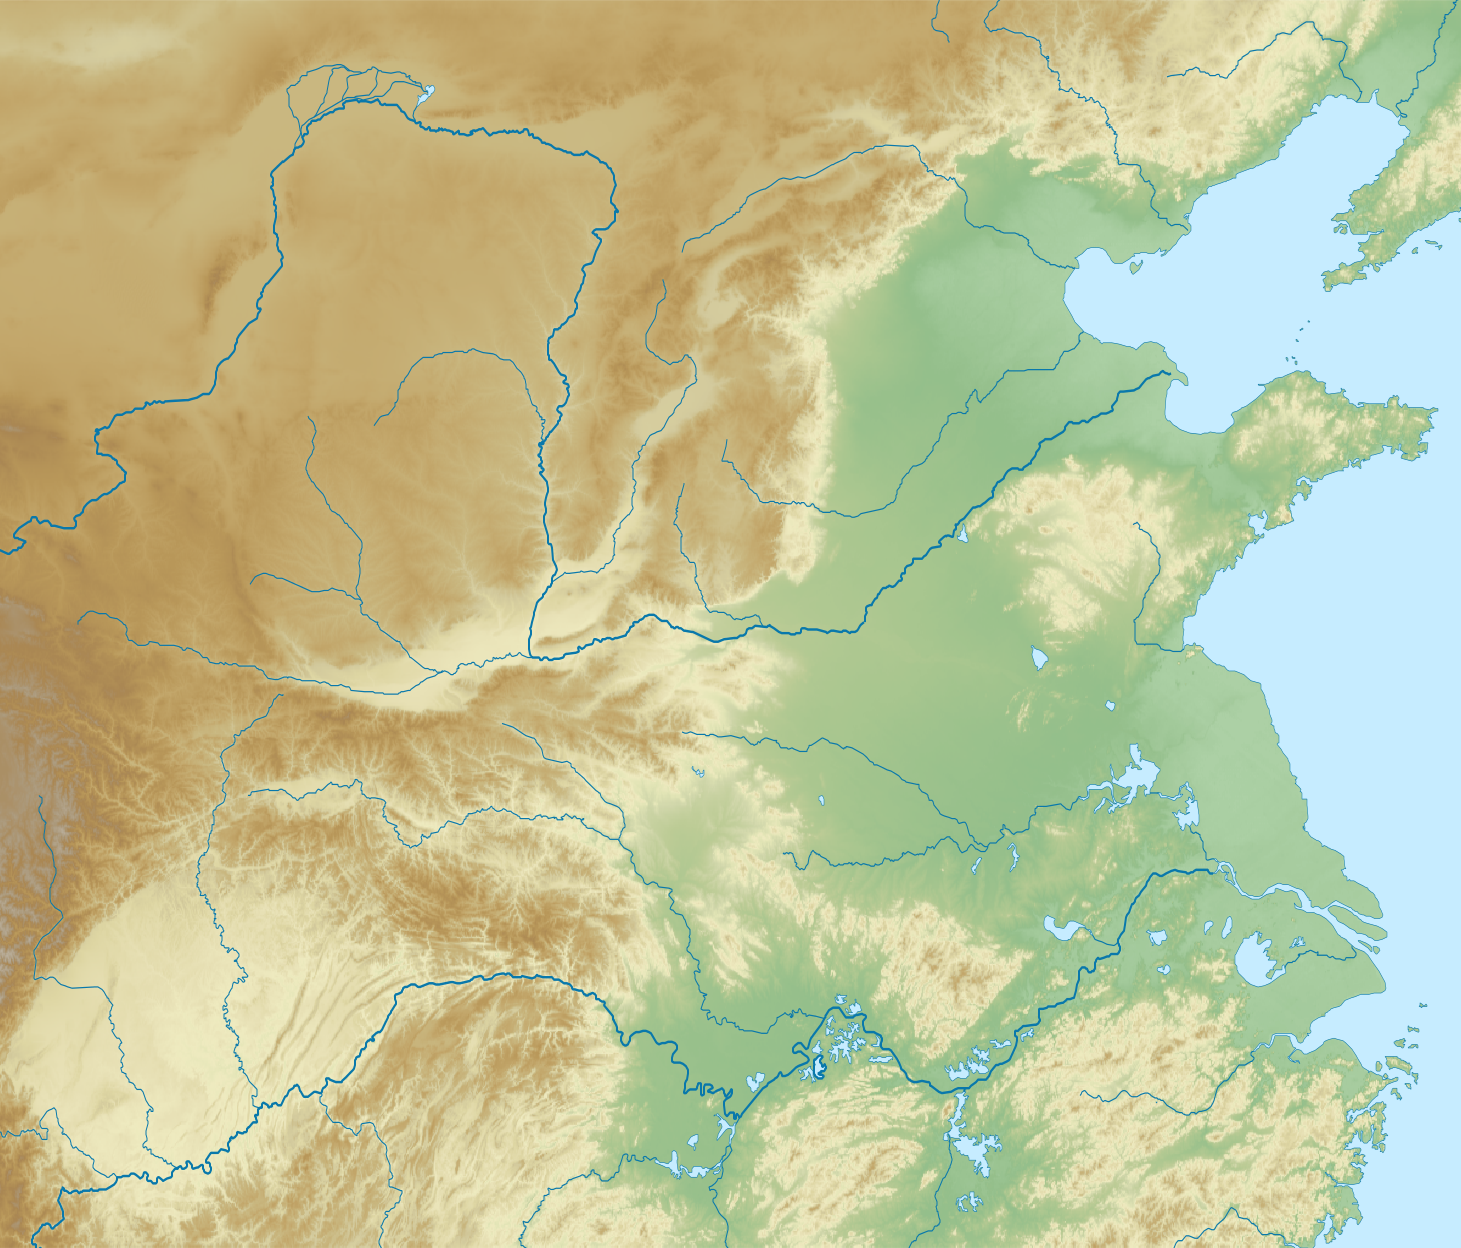 Xiashangzhou chronology project wikipedia xiashangzhou chronology project is located in china sciox Image collections